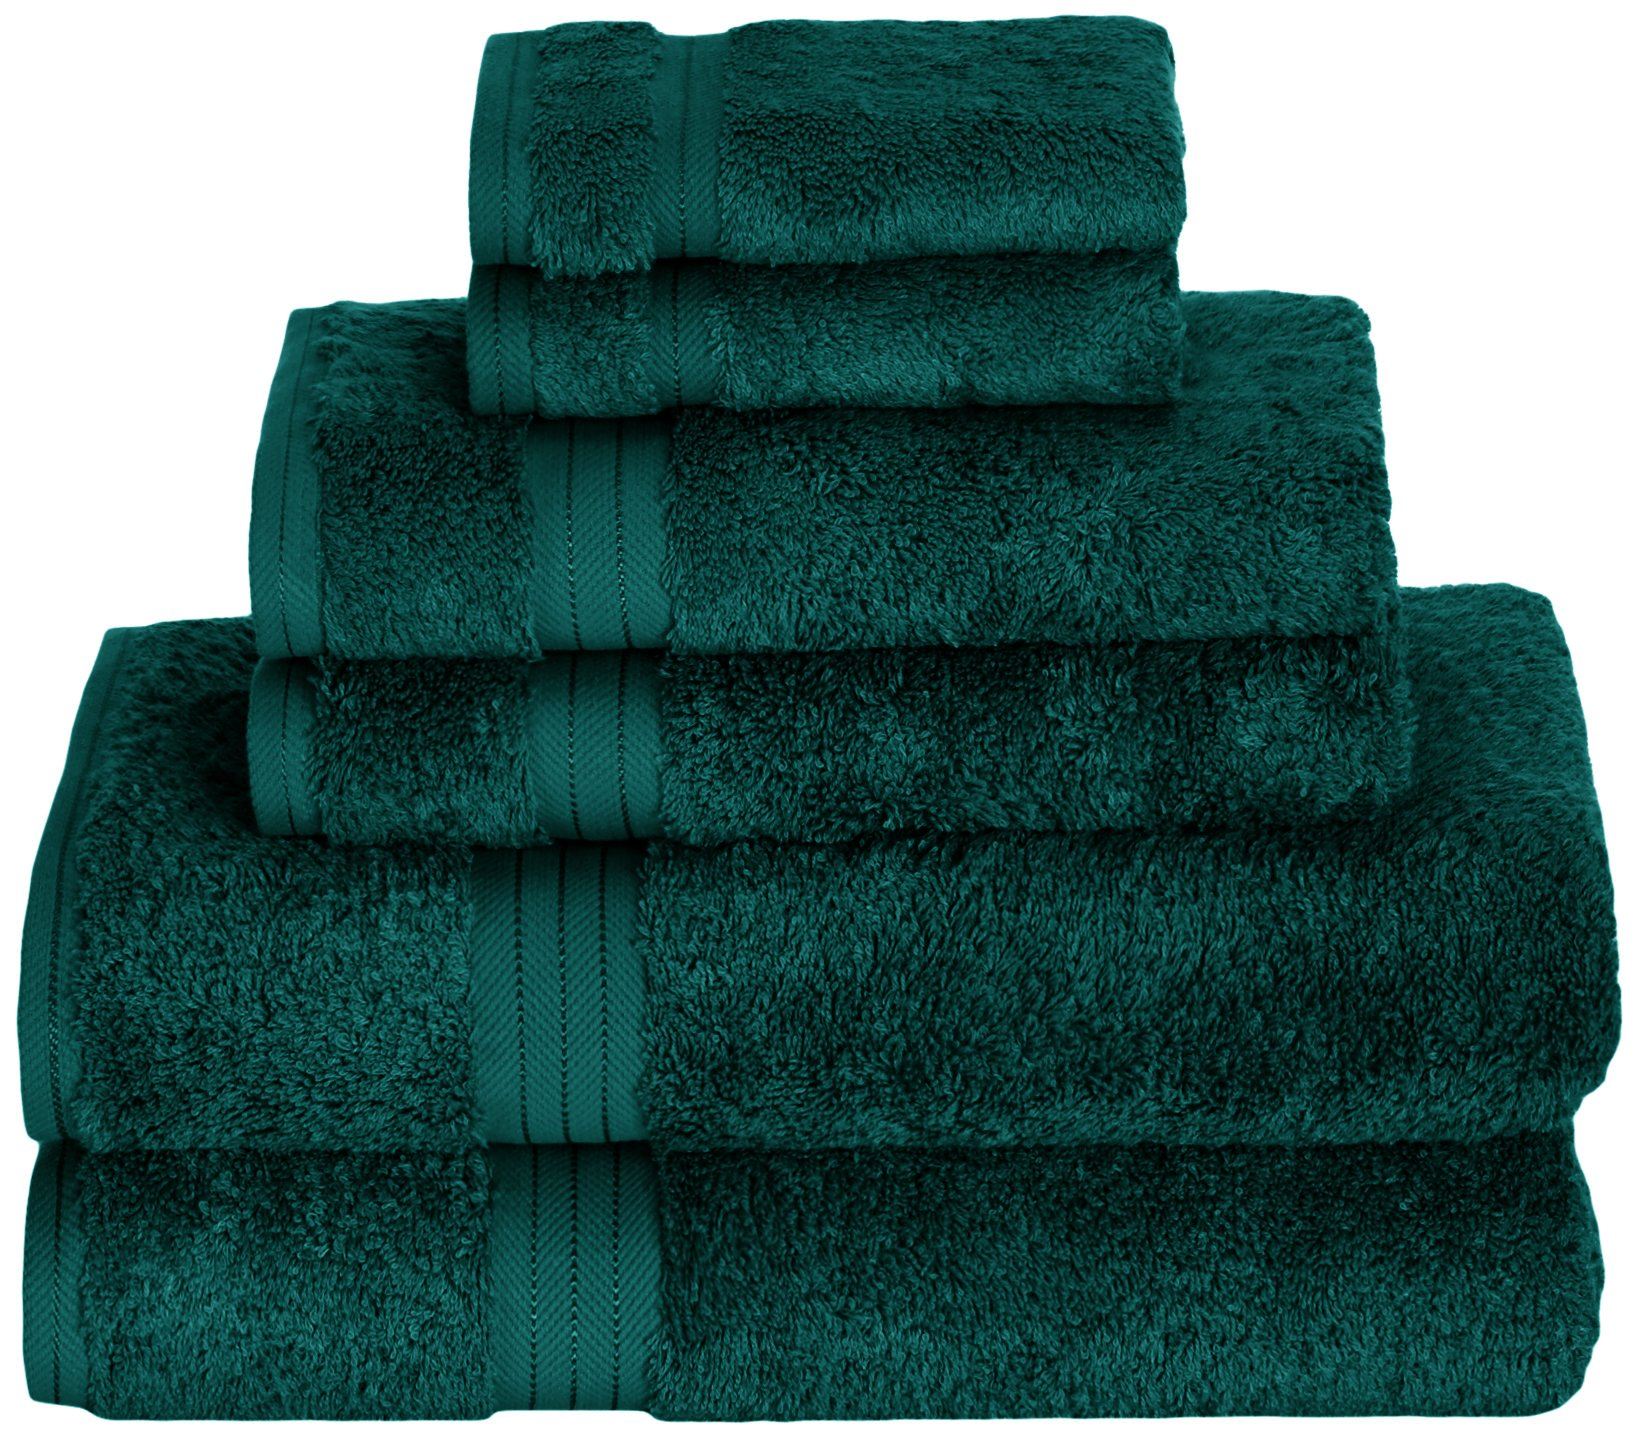 Daisy House Bamboo Towel Set (2 Bath, 2 Hand & 2 wash), Deep Teal